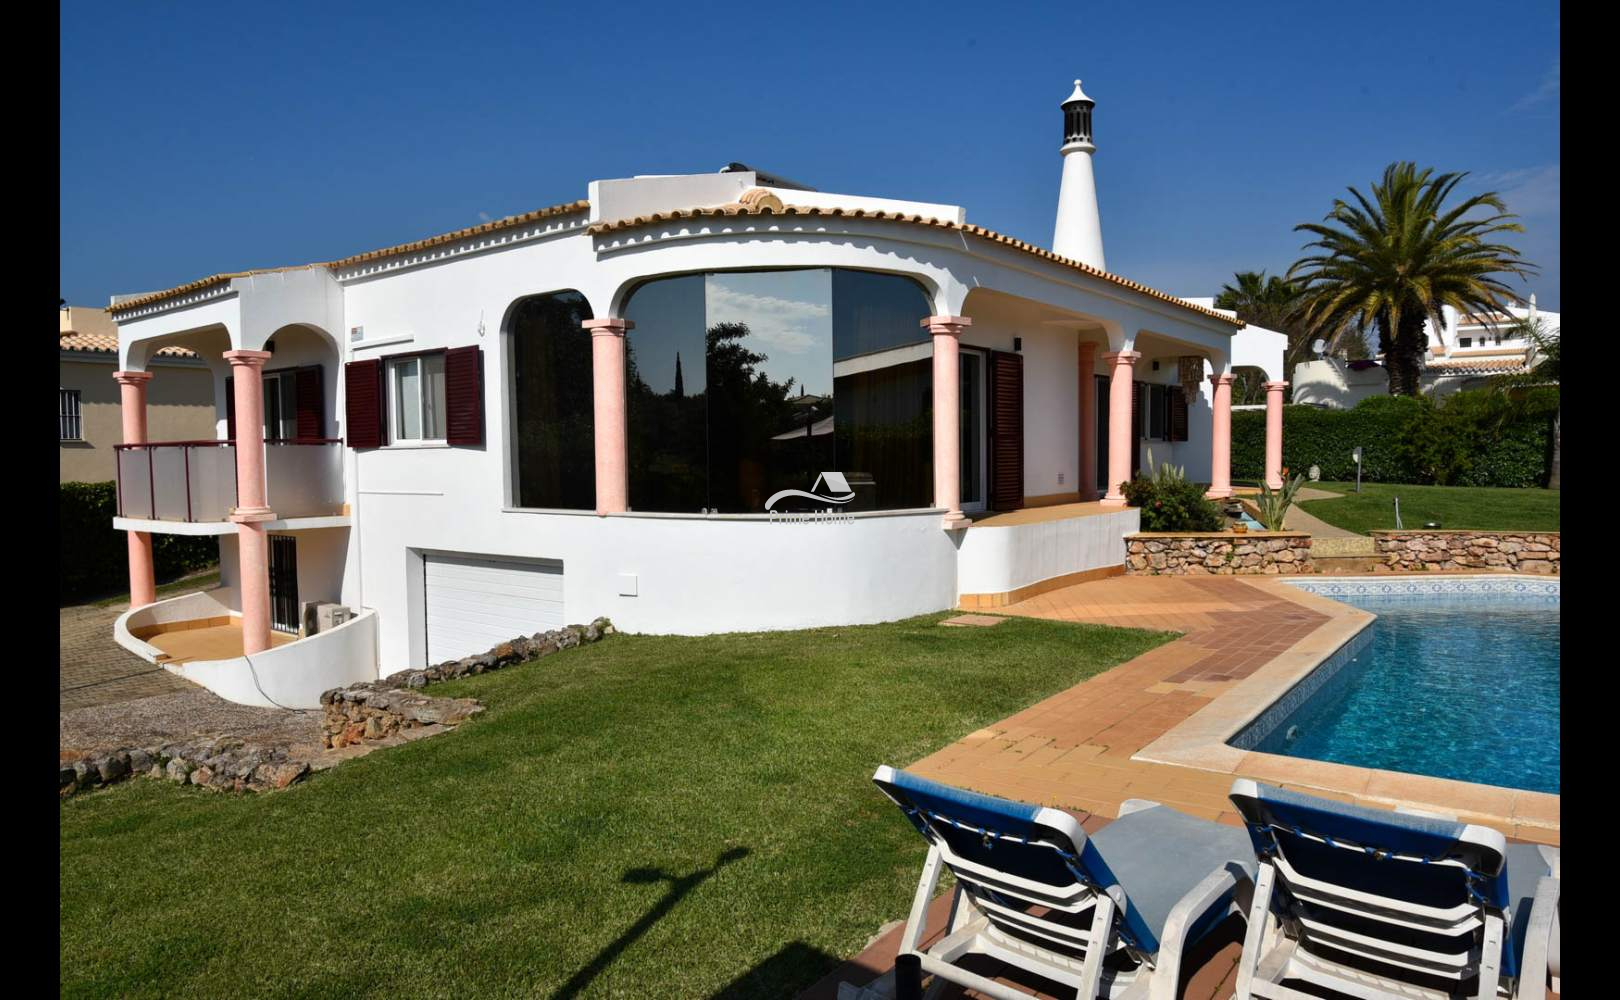 Charming 3 Bedroom Villa for sale in one of the best areas of Vilamoura (33)